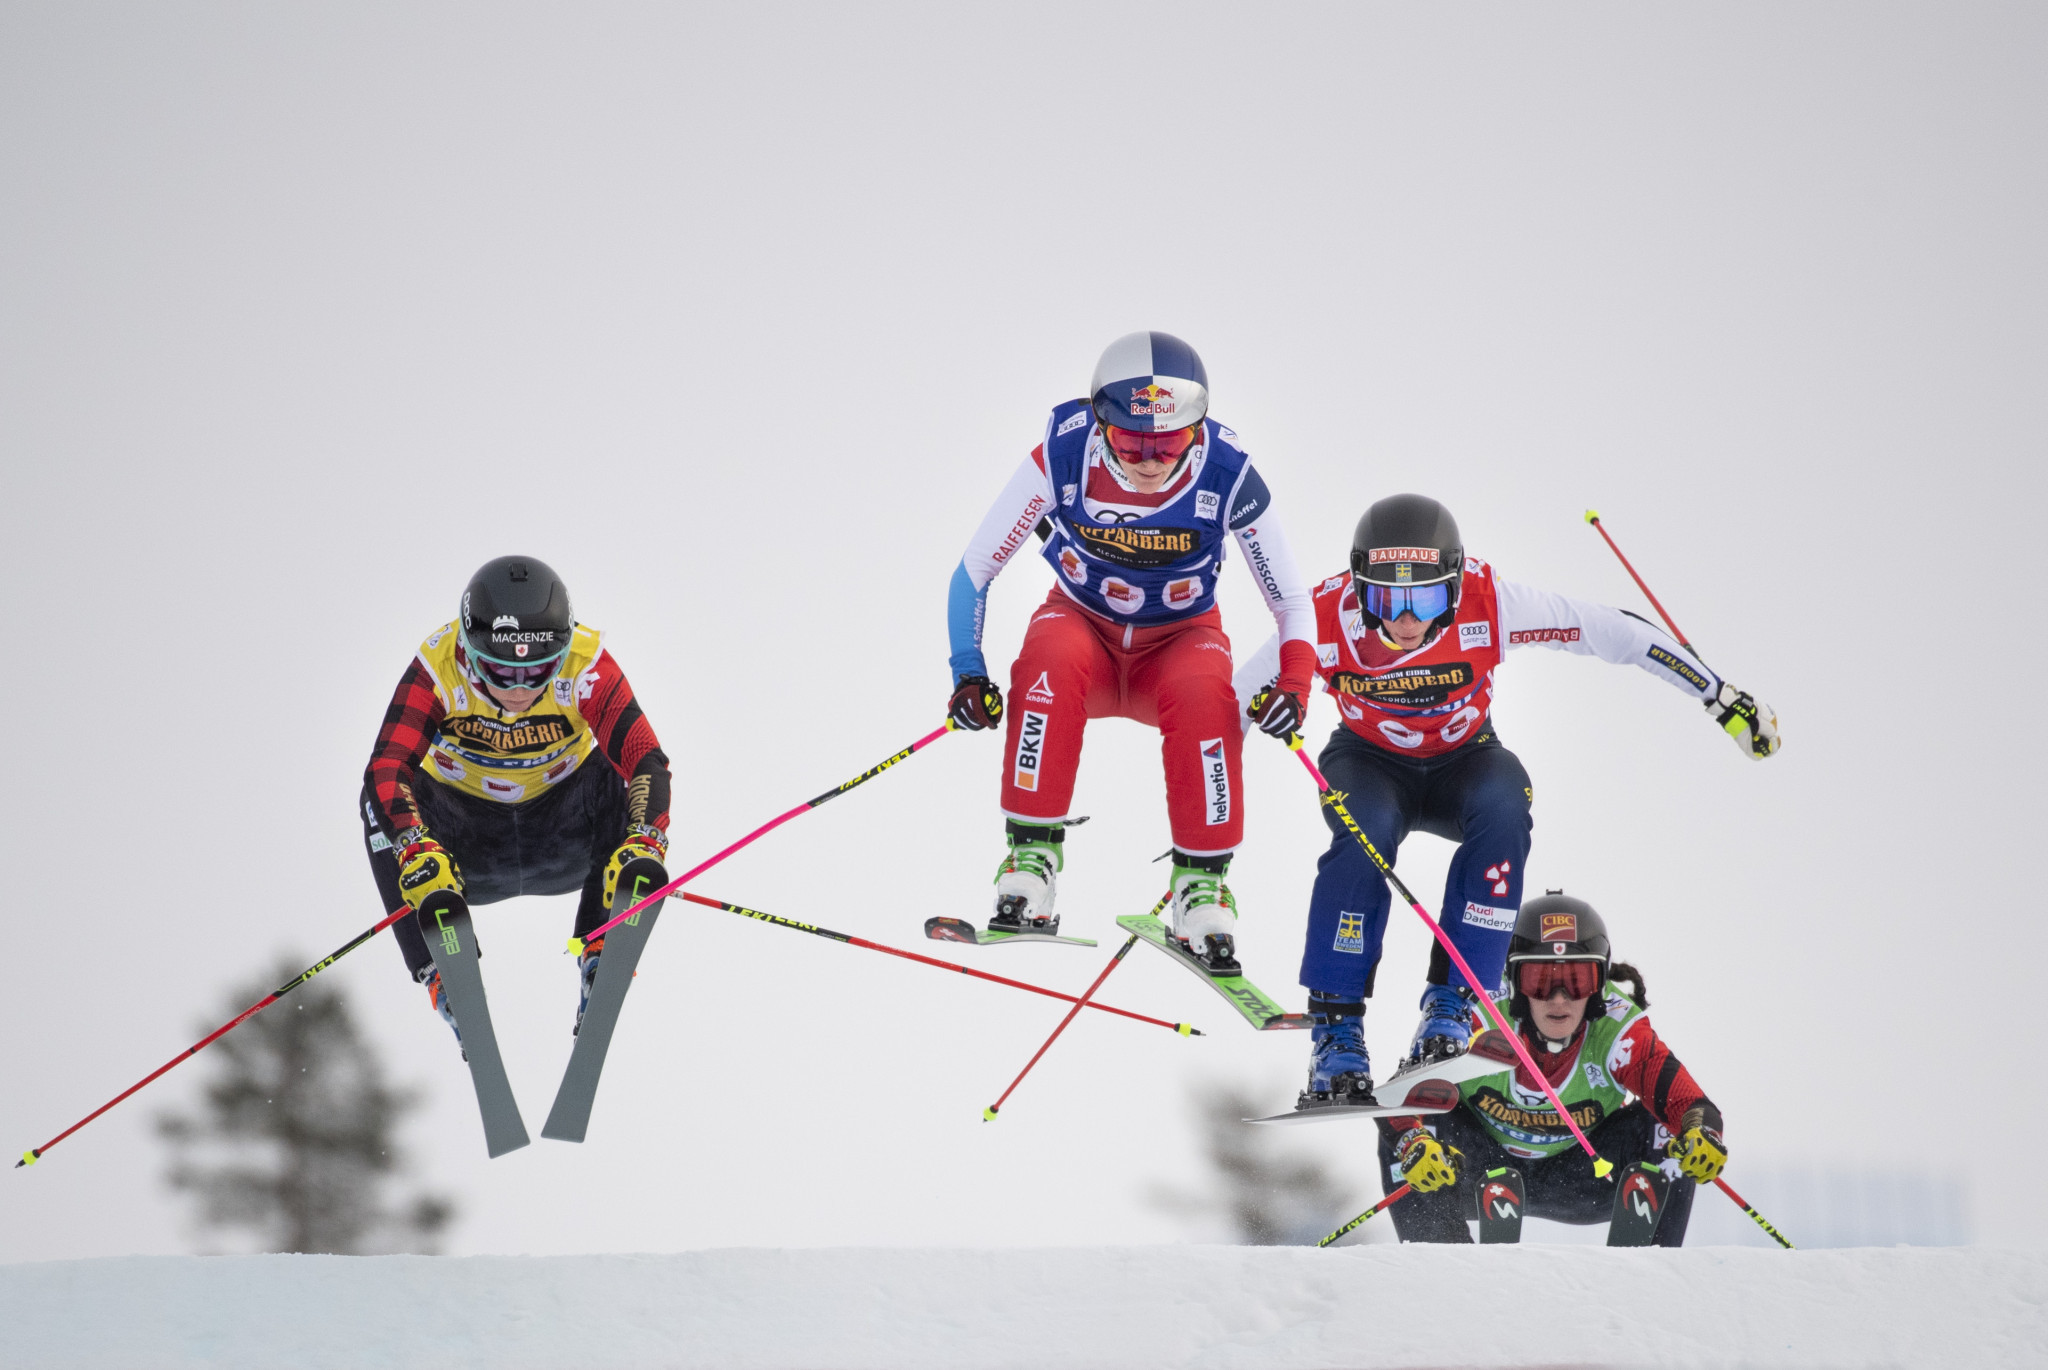 Ski cross competition is set to take place on the final day of the World Championships ©Getty Images